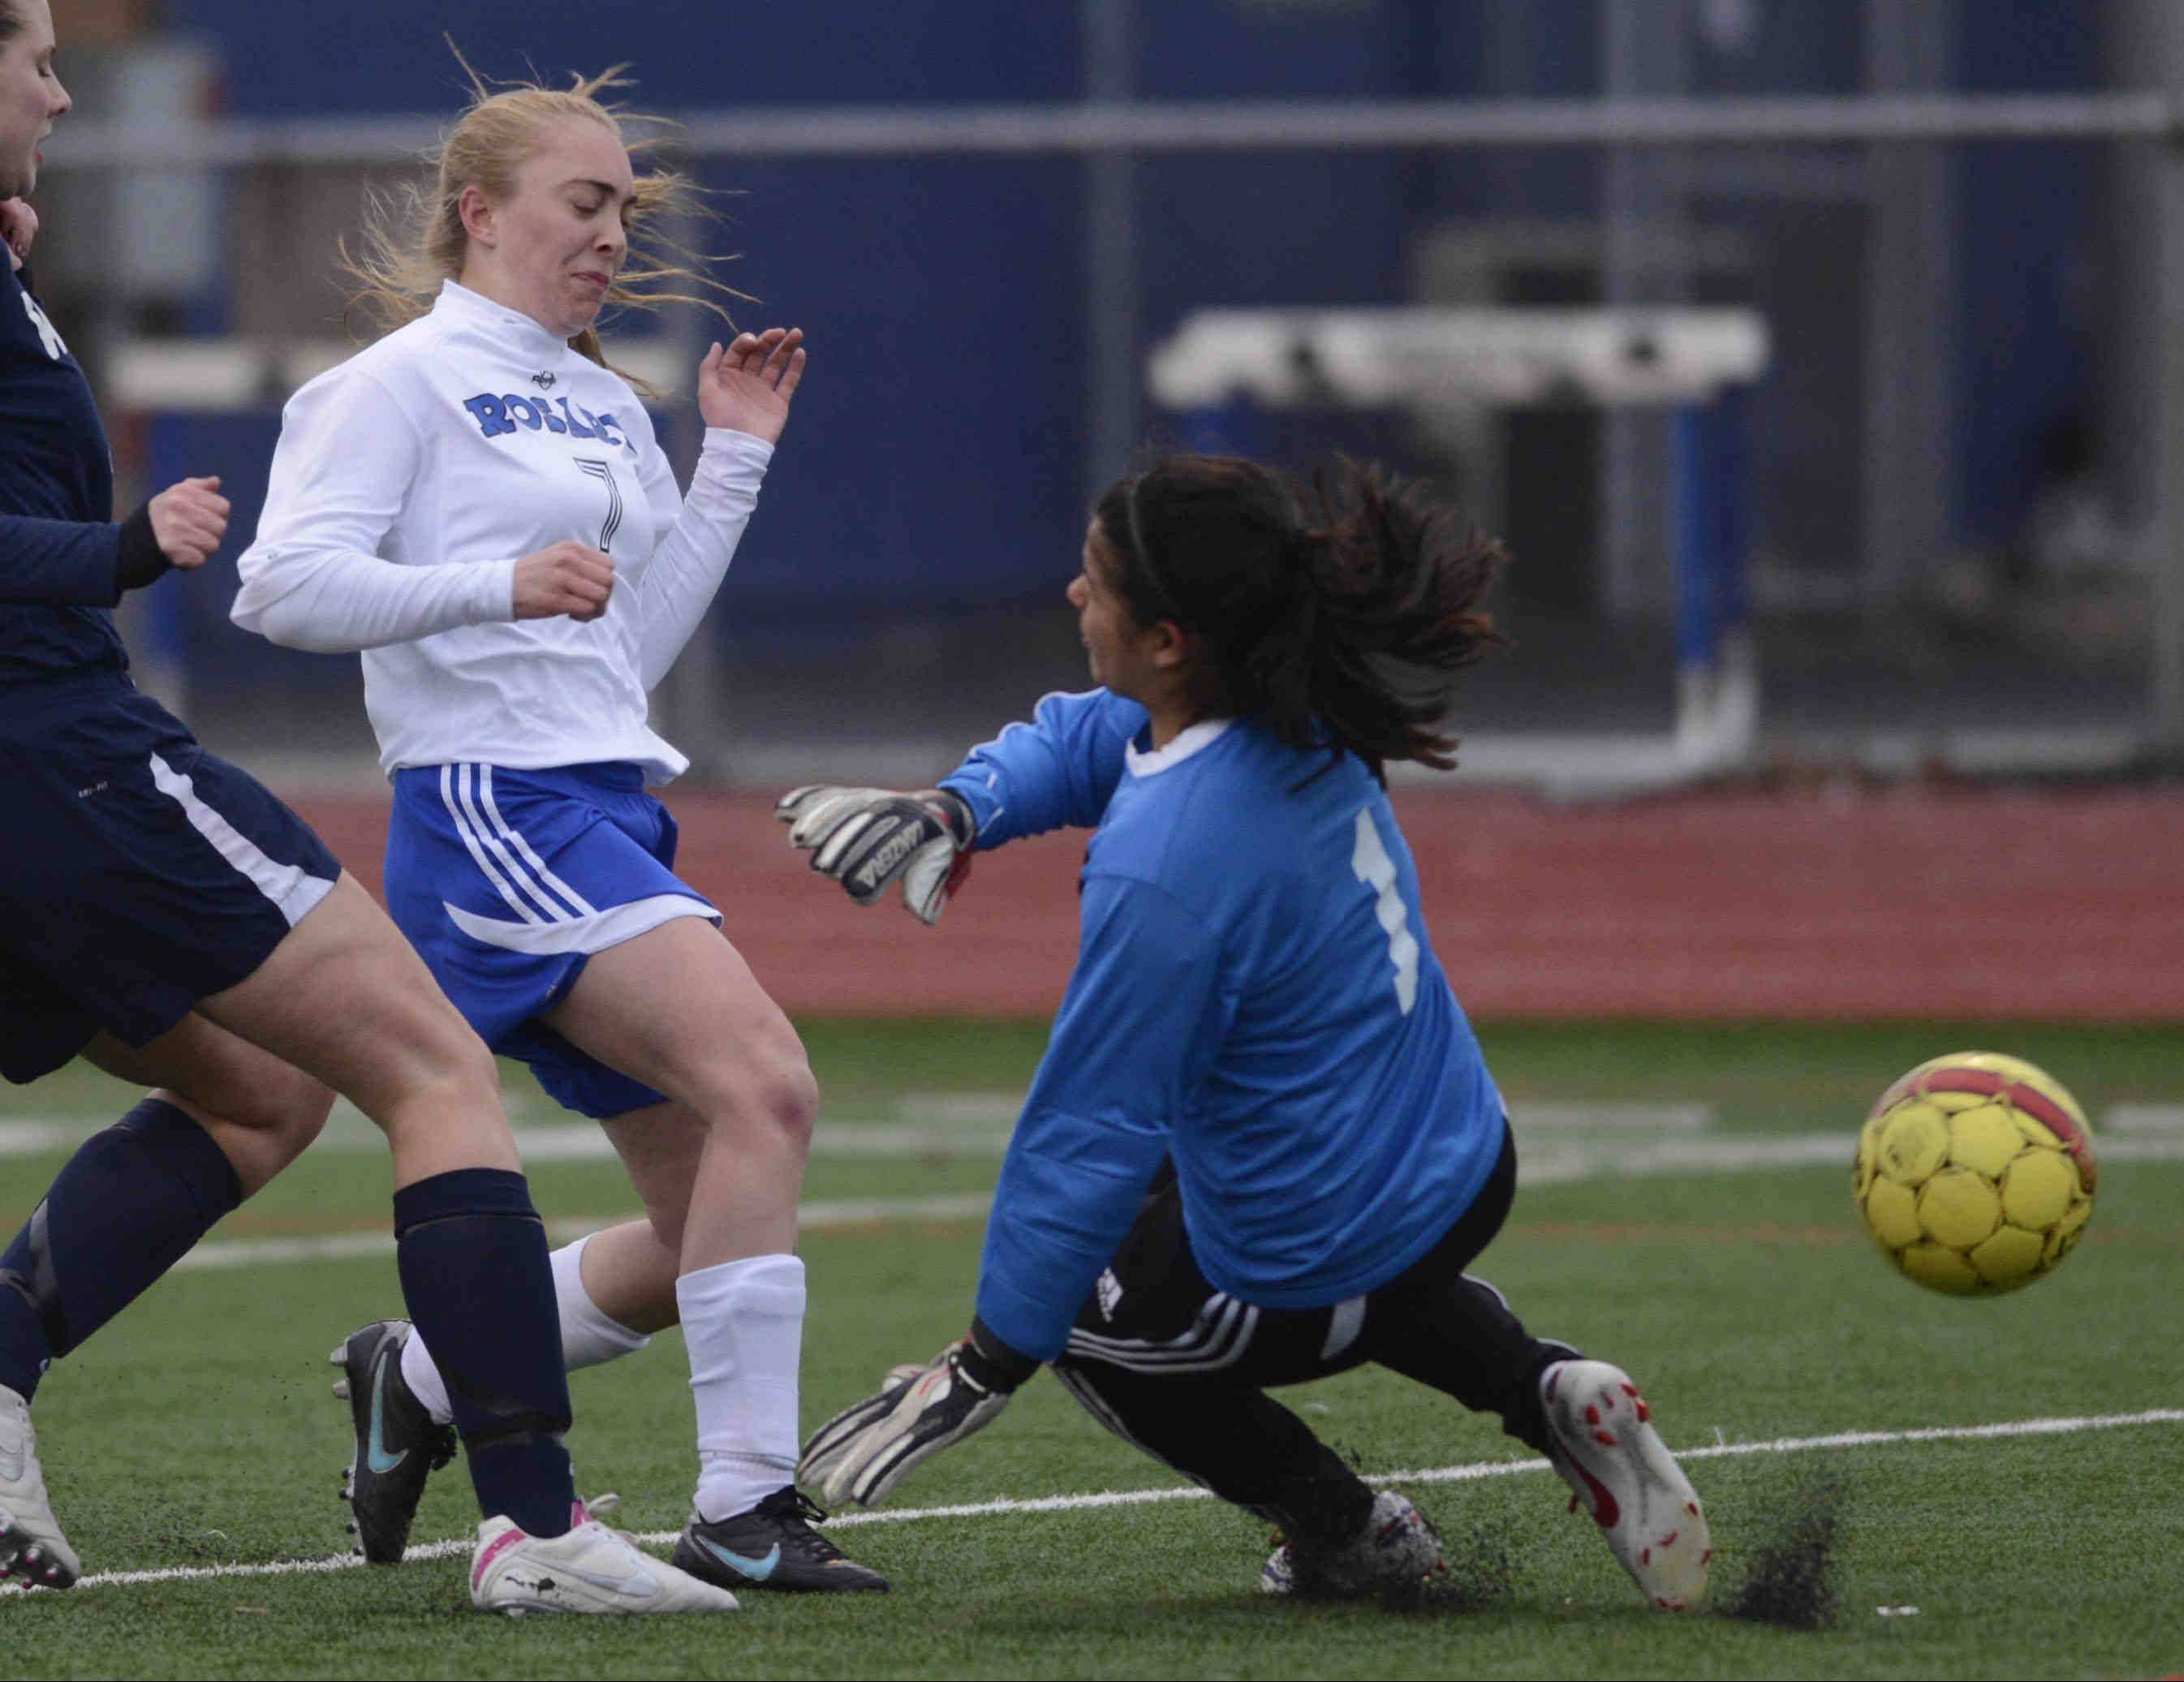 Rosary's Emily Martin gets a shot past West Aurora goalkeeper Jasmine Mejia. The ball went wide.